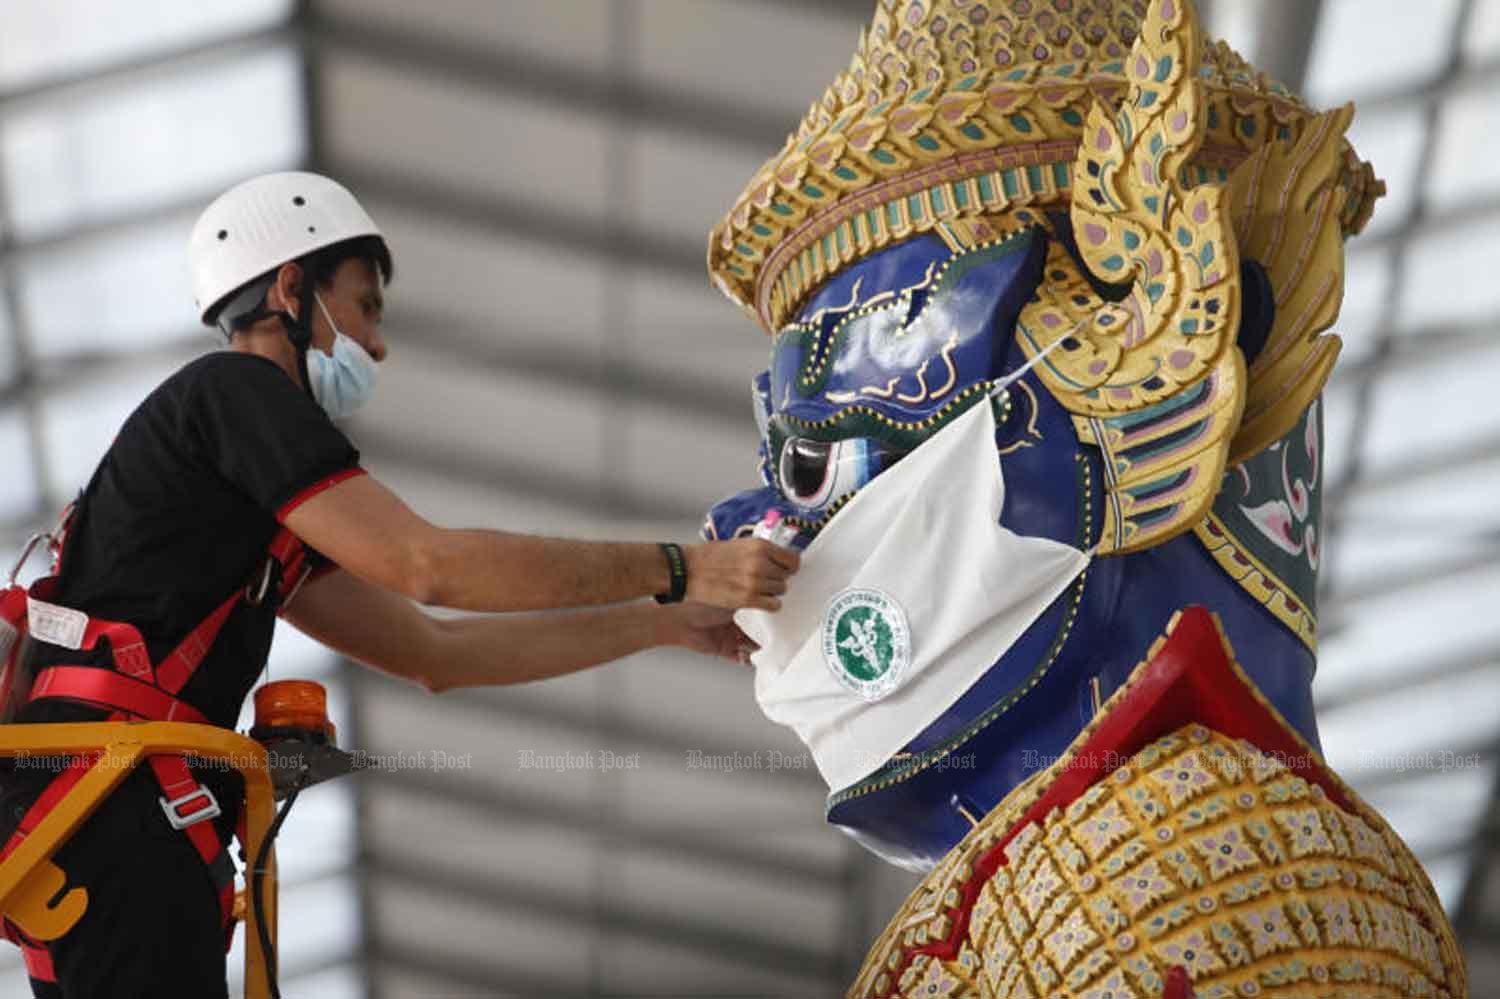 A worker puts a mask on the statue of a guardian demon in the passenger terminal at Suvarnabhumi airport on Monday, part of the campaign to get people to wear masks to contain the spread of Covid-19. (Photo: Wichan Charoenkiatpakul)